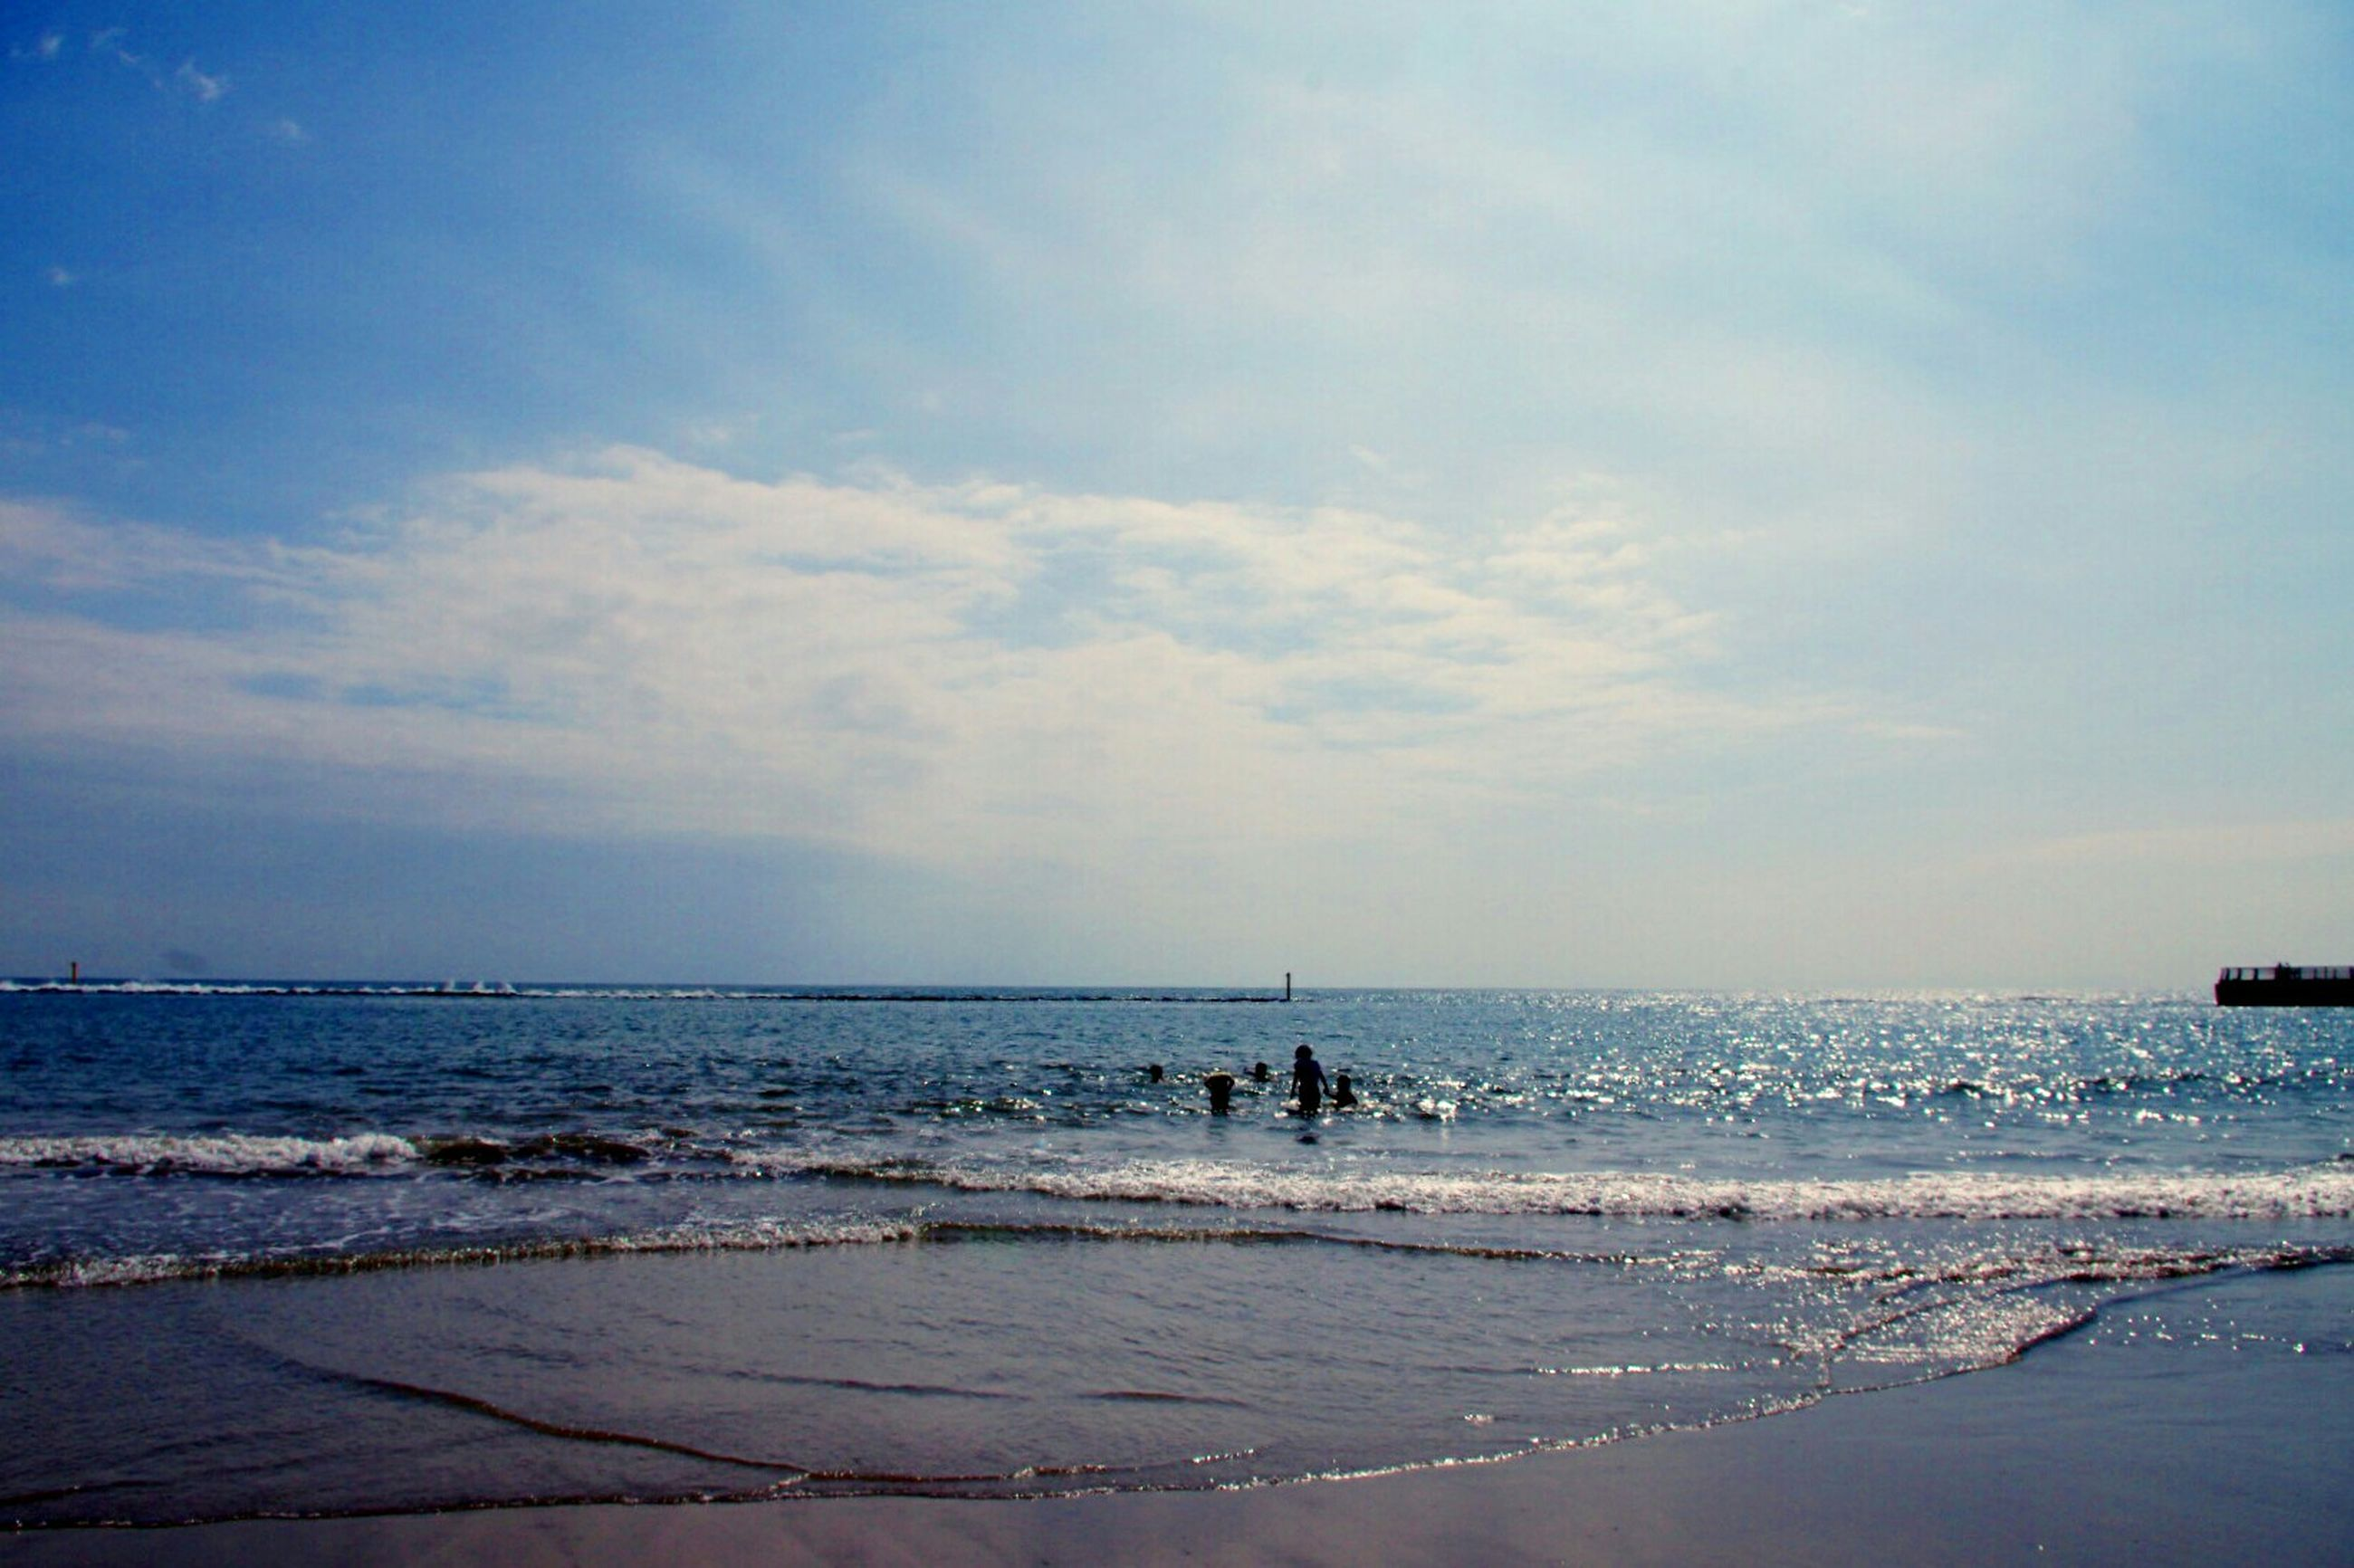 sea, horizon over water, water, beach, sky, scenics, shore, tranquil scene, tranquility, beauty in nature, cloud - sky, silhouette, nature, incidental people, idyllic, cloud, wave, sand, outdoors